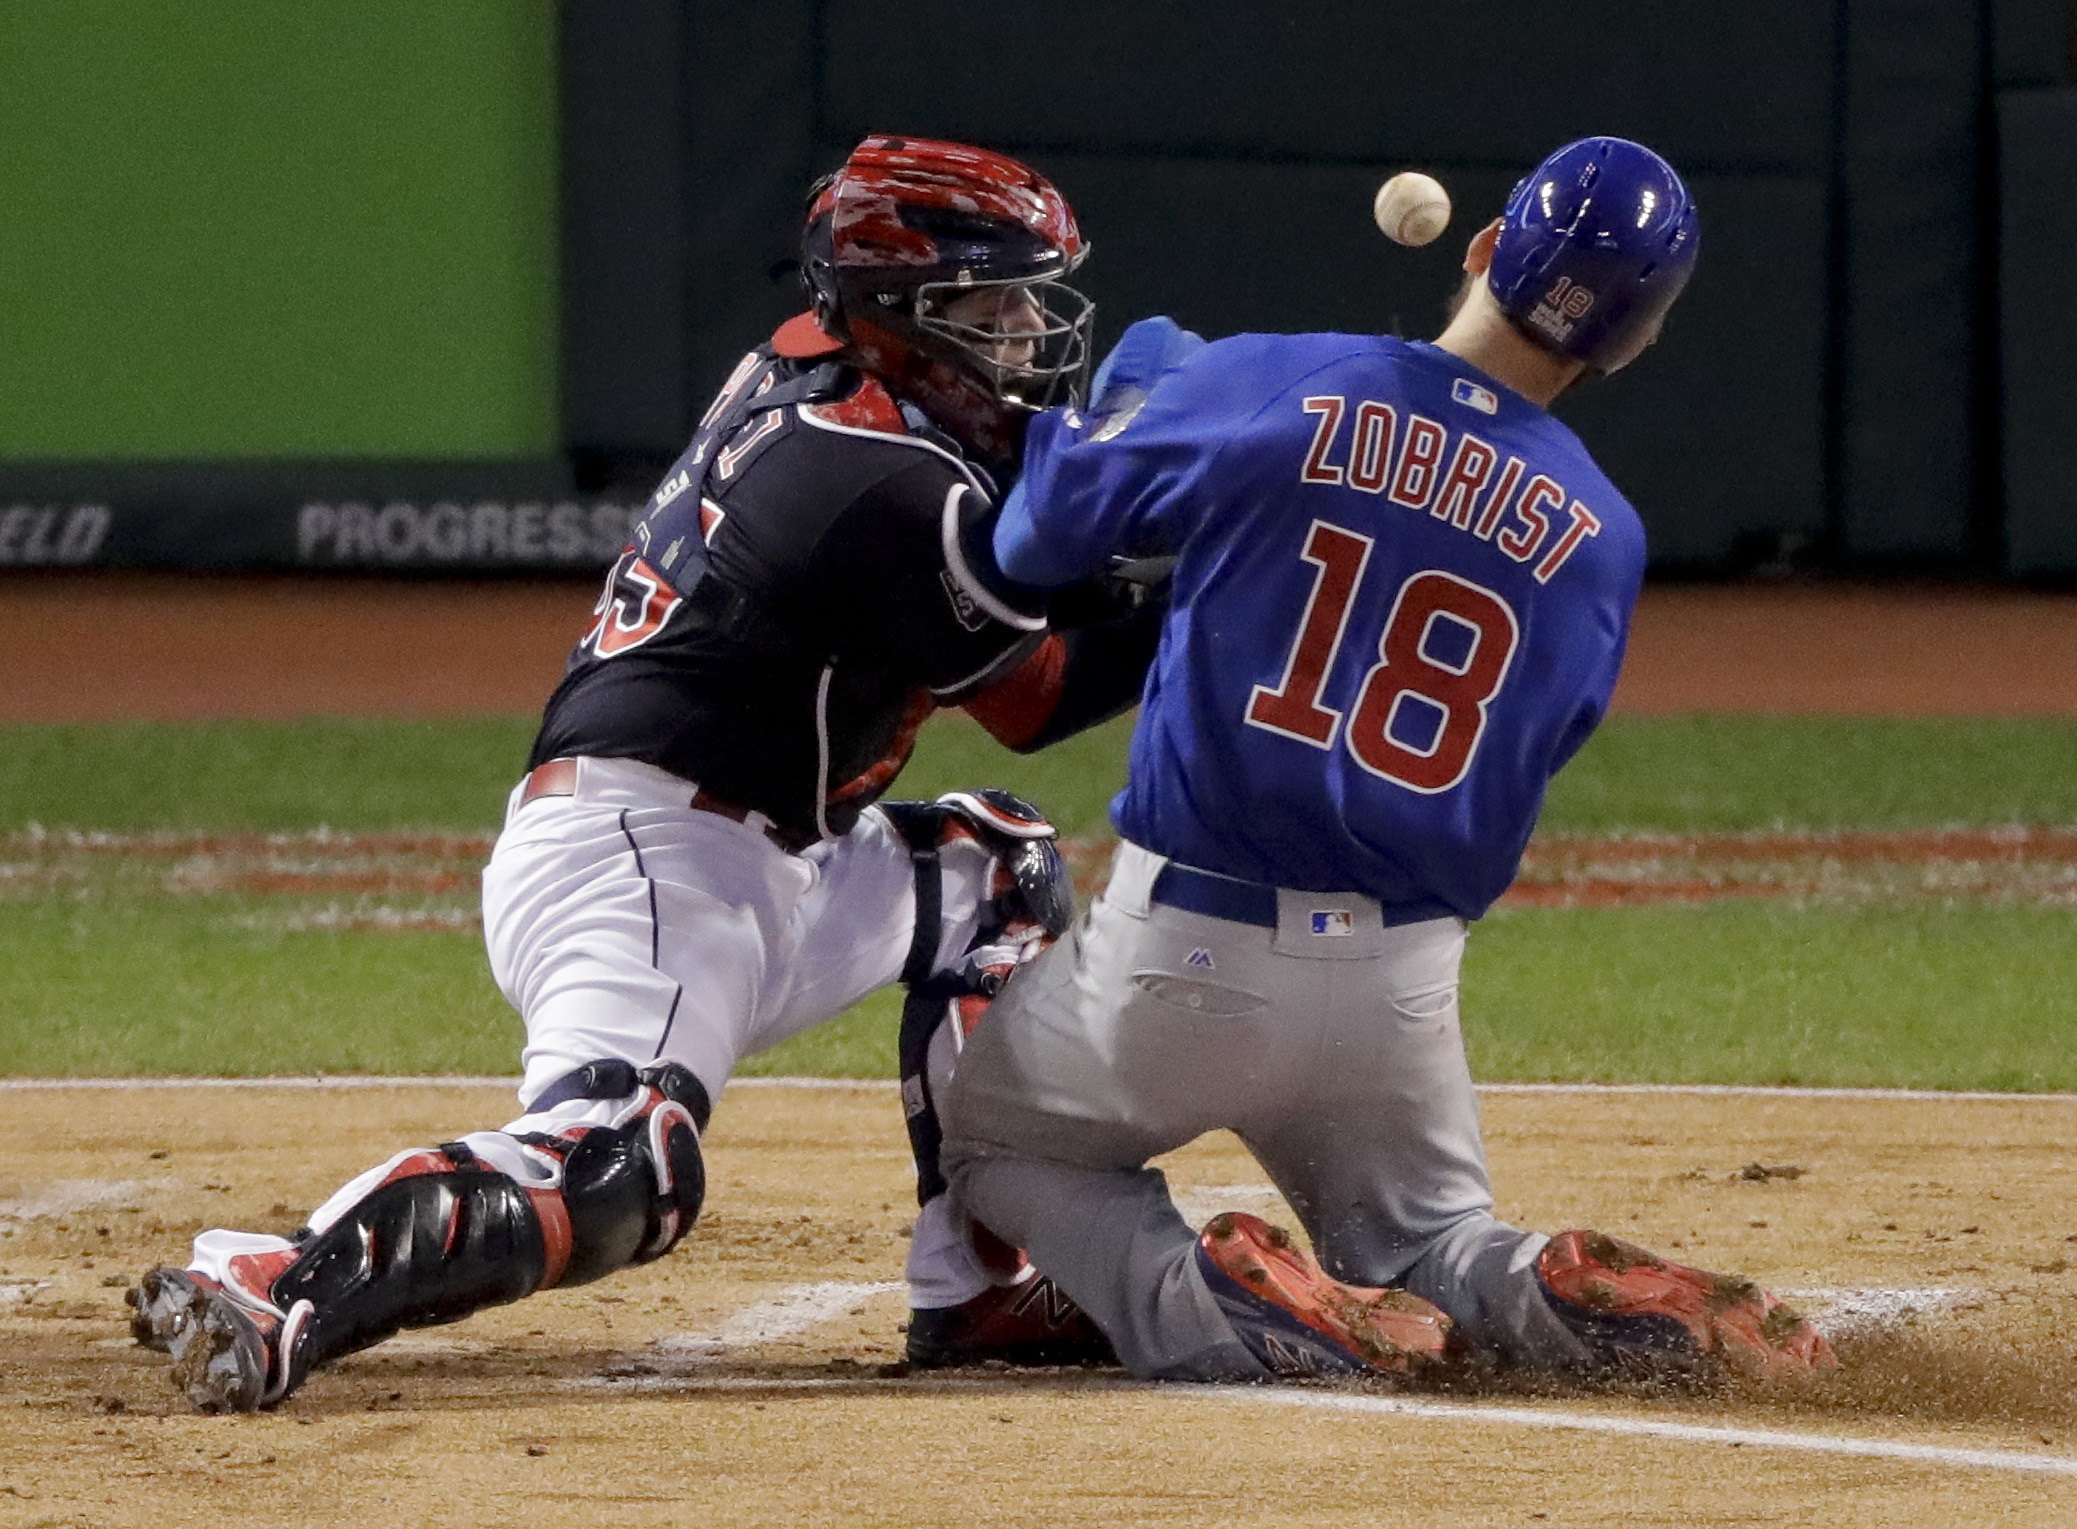 Chicago Cubs' Ben Zobrist scores past Cleveland Indians' Roberto Perez on a double by Addison Russell: during the first inning of Game 6 of the Major League Baseball World Series Tuesday, Nov. 1, 2016, in Cleveland. (AP Photo/Charlie Riedel)